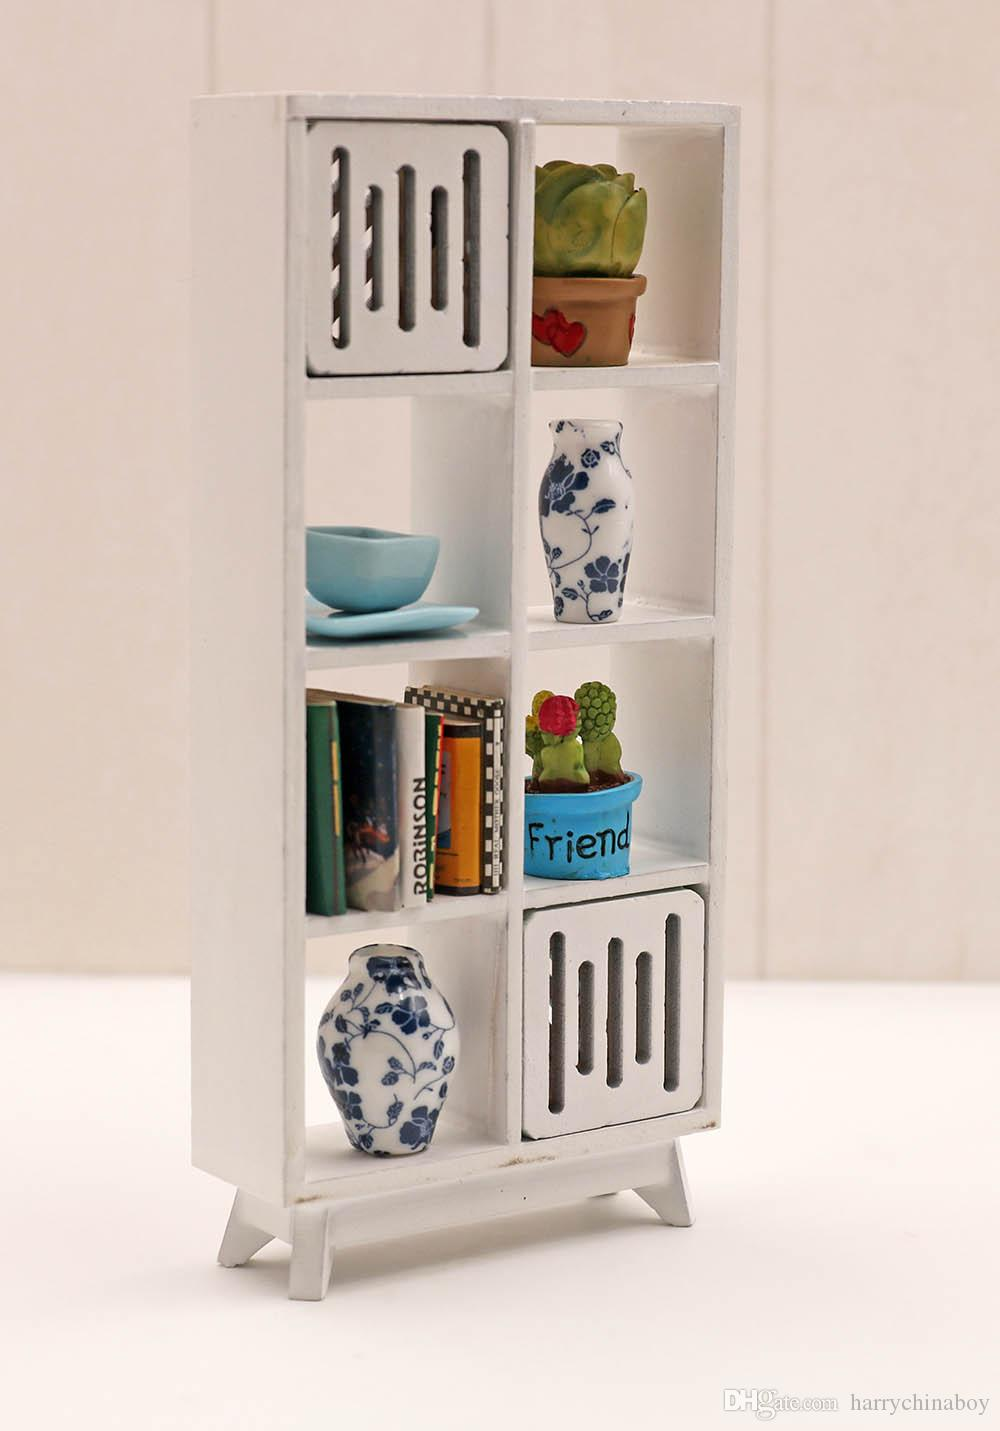 Dollhouse Miniature Furniture White Bookshelf Bookcase Library Wood Cabinet Toy Doll Accessories Dolls Pram Accessories From Harrychinaboy 8 96